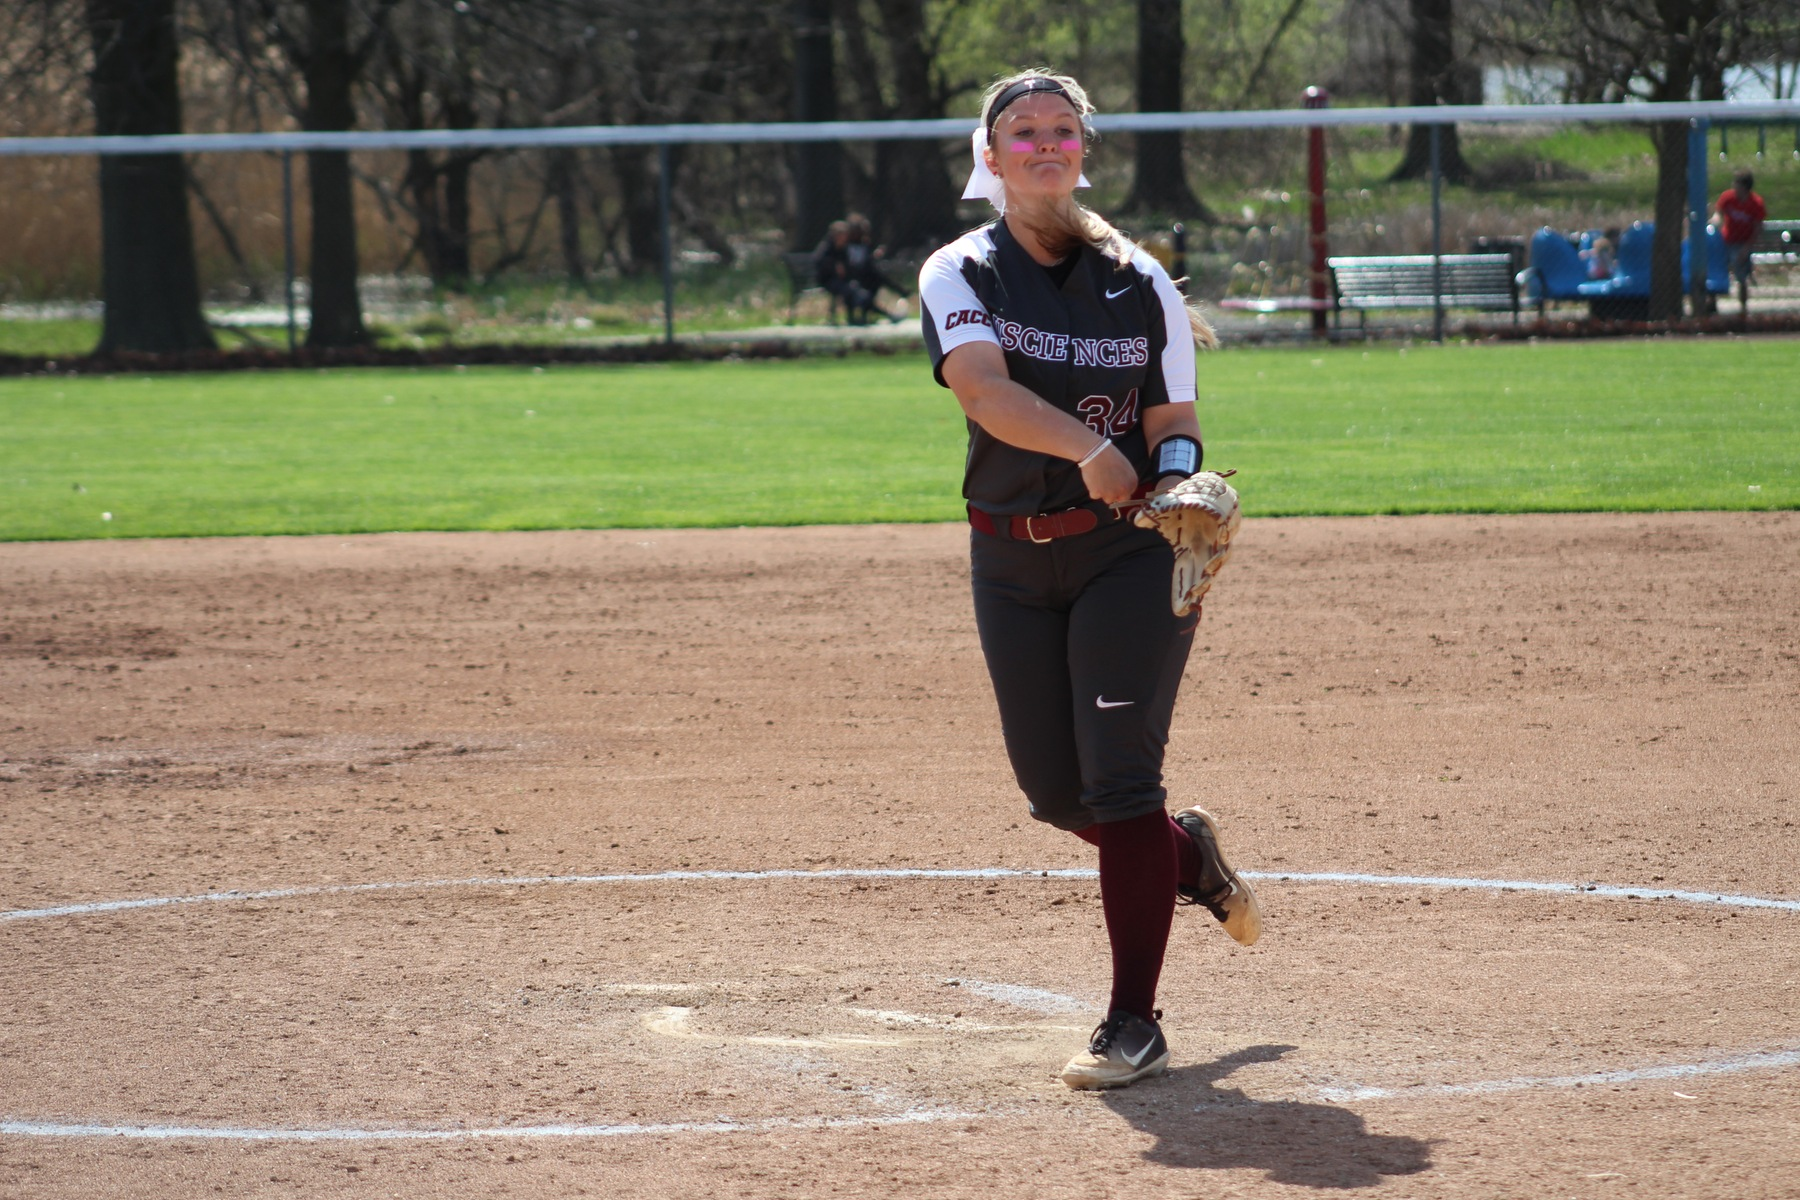 Gaynor Becomes All-Time Strikeouts Leader; Softball Drops Pitcher's Duel in Game One of Doubleheader Sweep Against Second-Place Wilmington